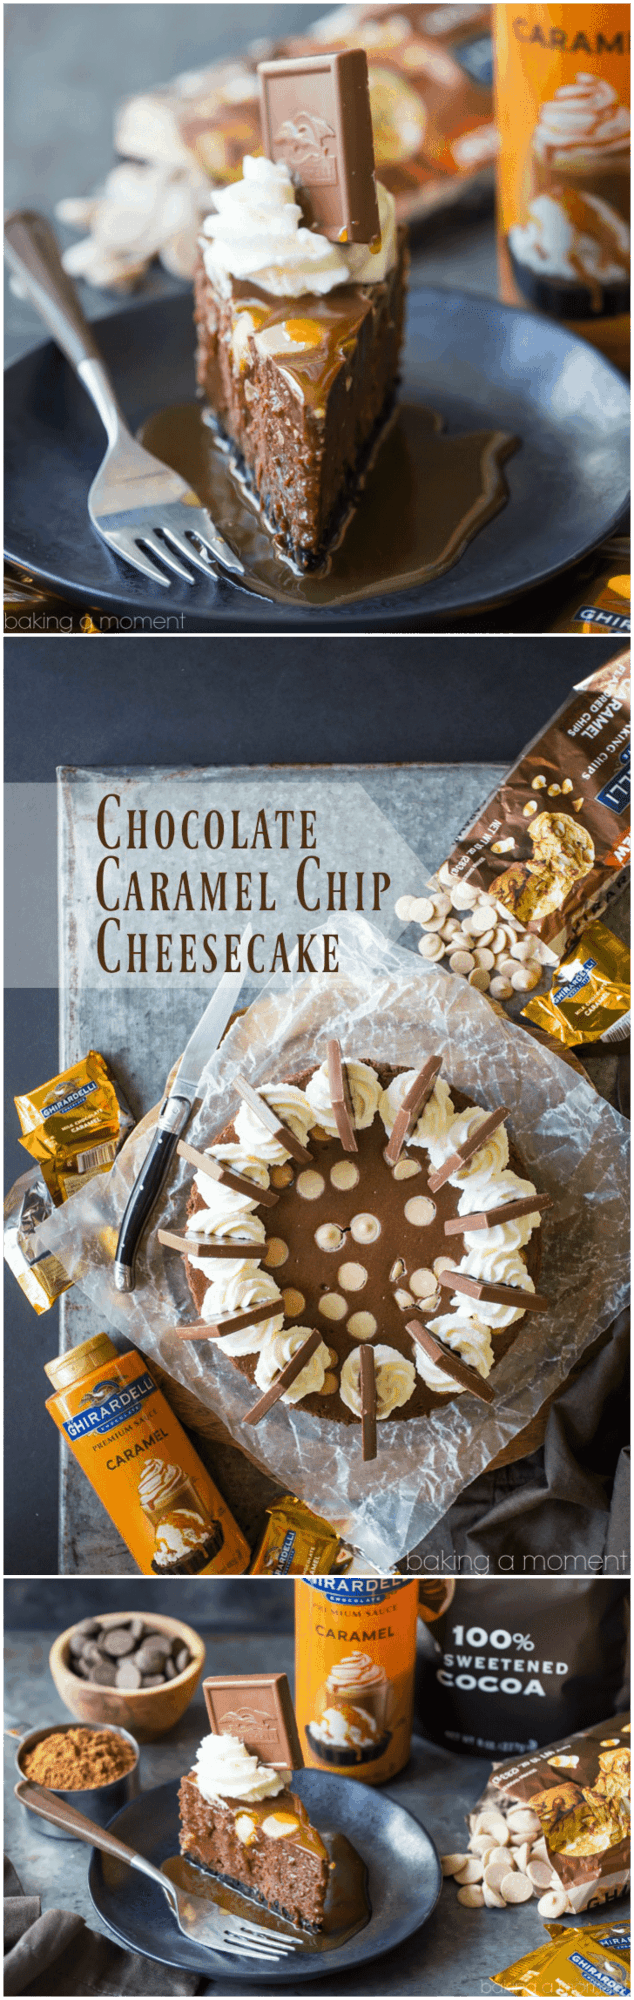 Chocolate Caramel Chip Cheesecake: Omg this was to-die-for! So rich and chocolate-y. Will definitely make again- it's a perfect make-ahead dessert. food desserts chocolate